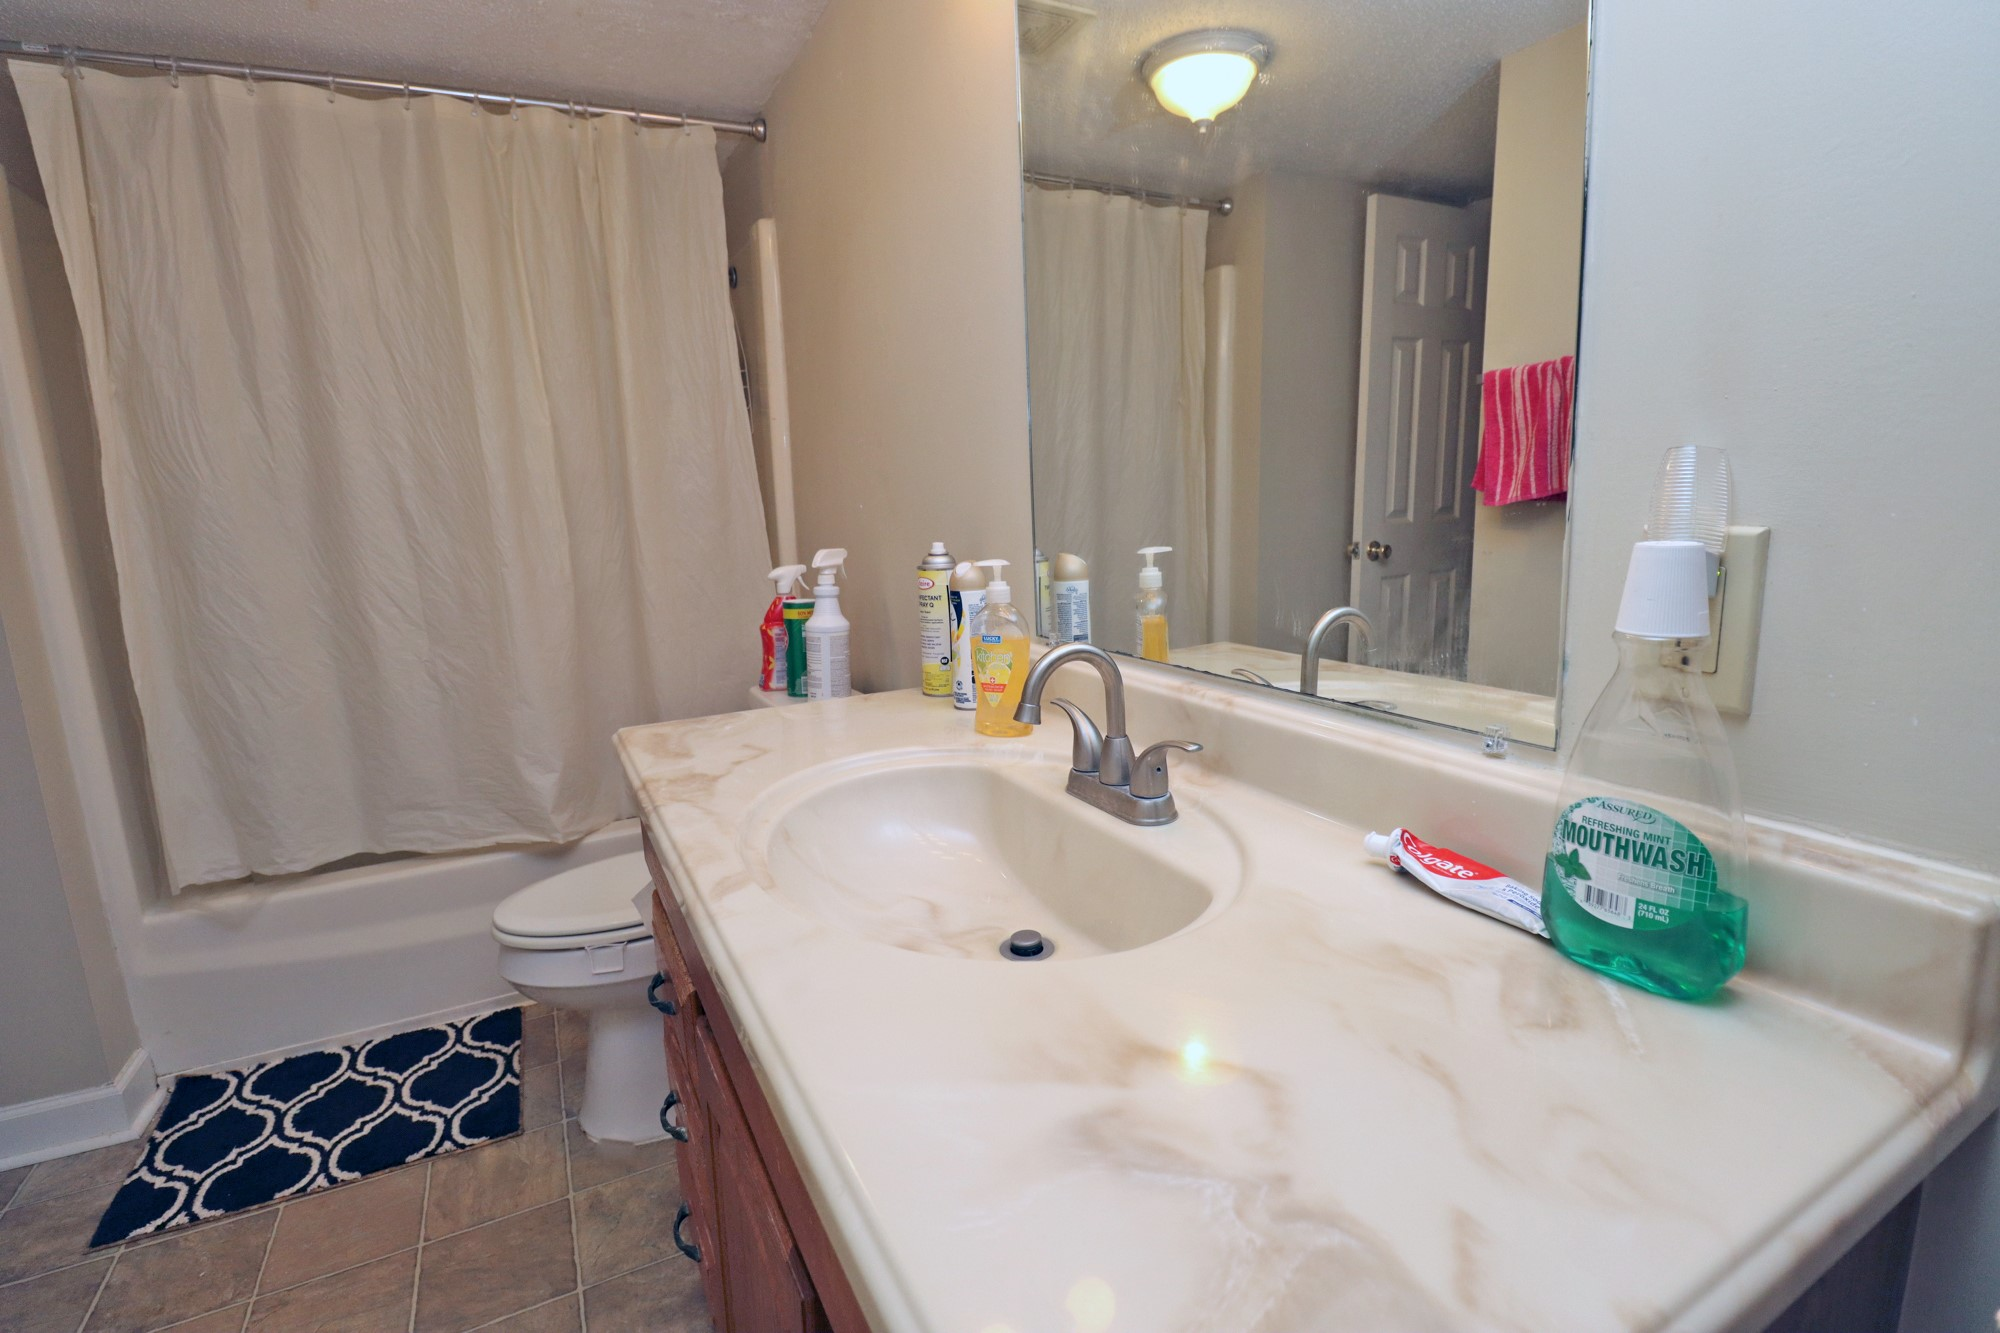 1 Bedroom Bedrooms, ,1 BathroomBathrooms,Apartment,For Rent,1473